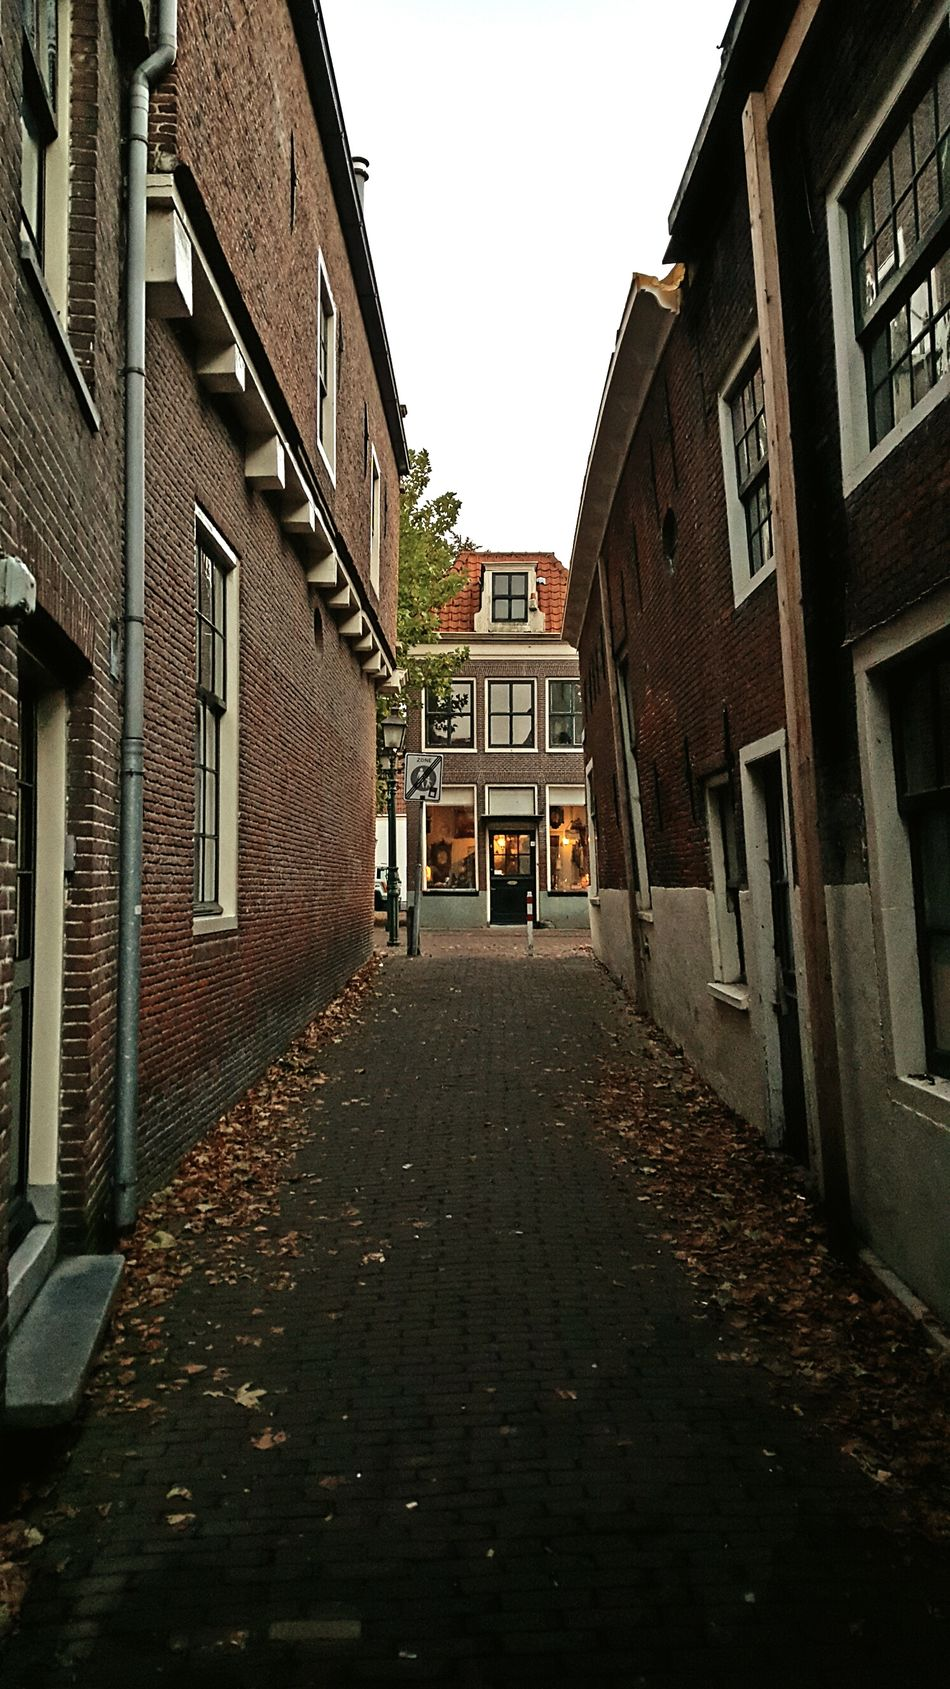 Architecture Building Exterior Built Structure House Dutch Cities Alleyways The Way Forward Taking Photos Alley Old Town Taking Pictures Hoorn City Architecture_collection Alleyway Netherlands Hoorn, Netherlands Dutch House Dutch Architecture Old Buildings Autumn Exploring New Ground Architectural Detail Scenics Travel Destinations